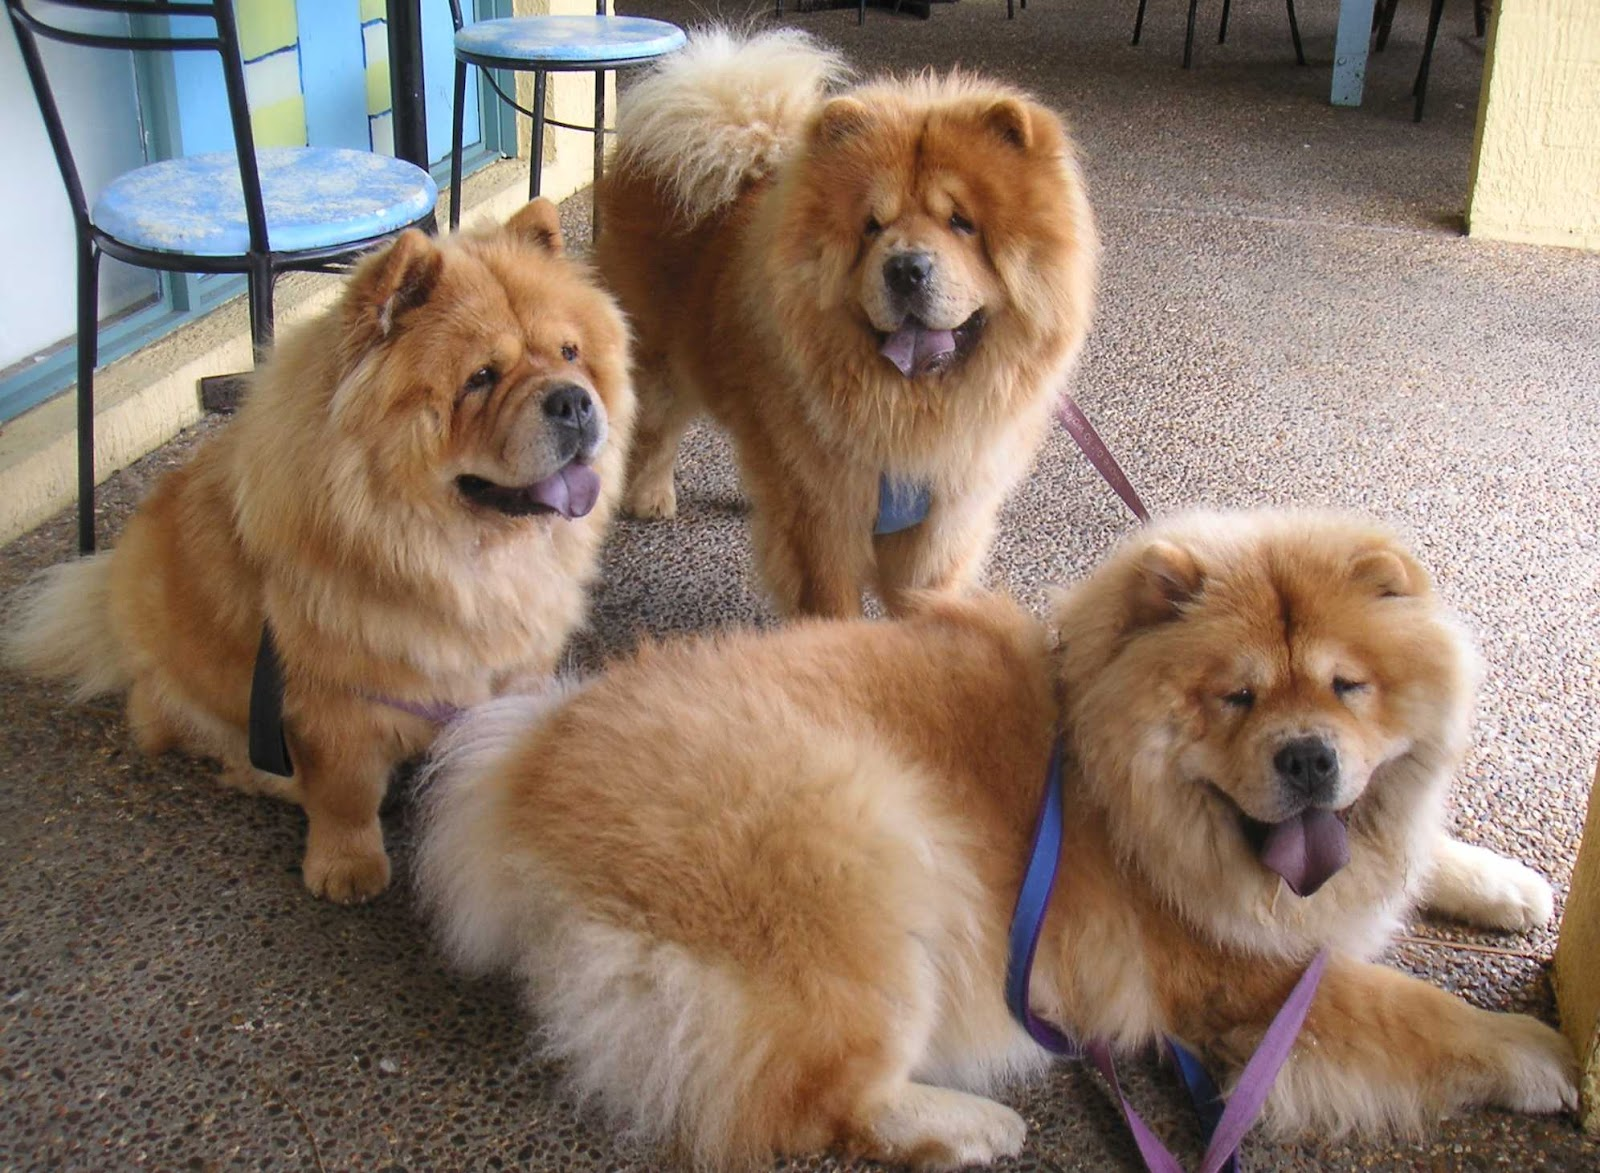 Chow chow dogs latest facts and pictures all wildlife photographs - Images of chow chow puppies ...